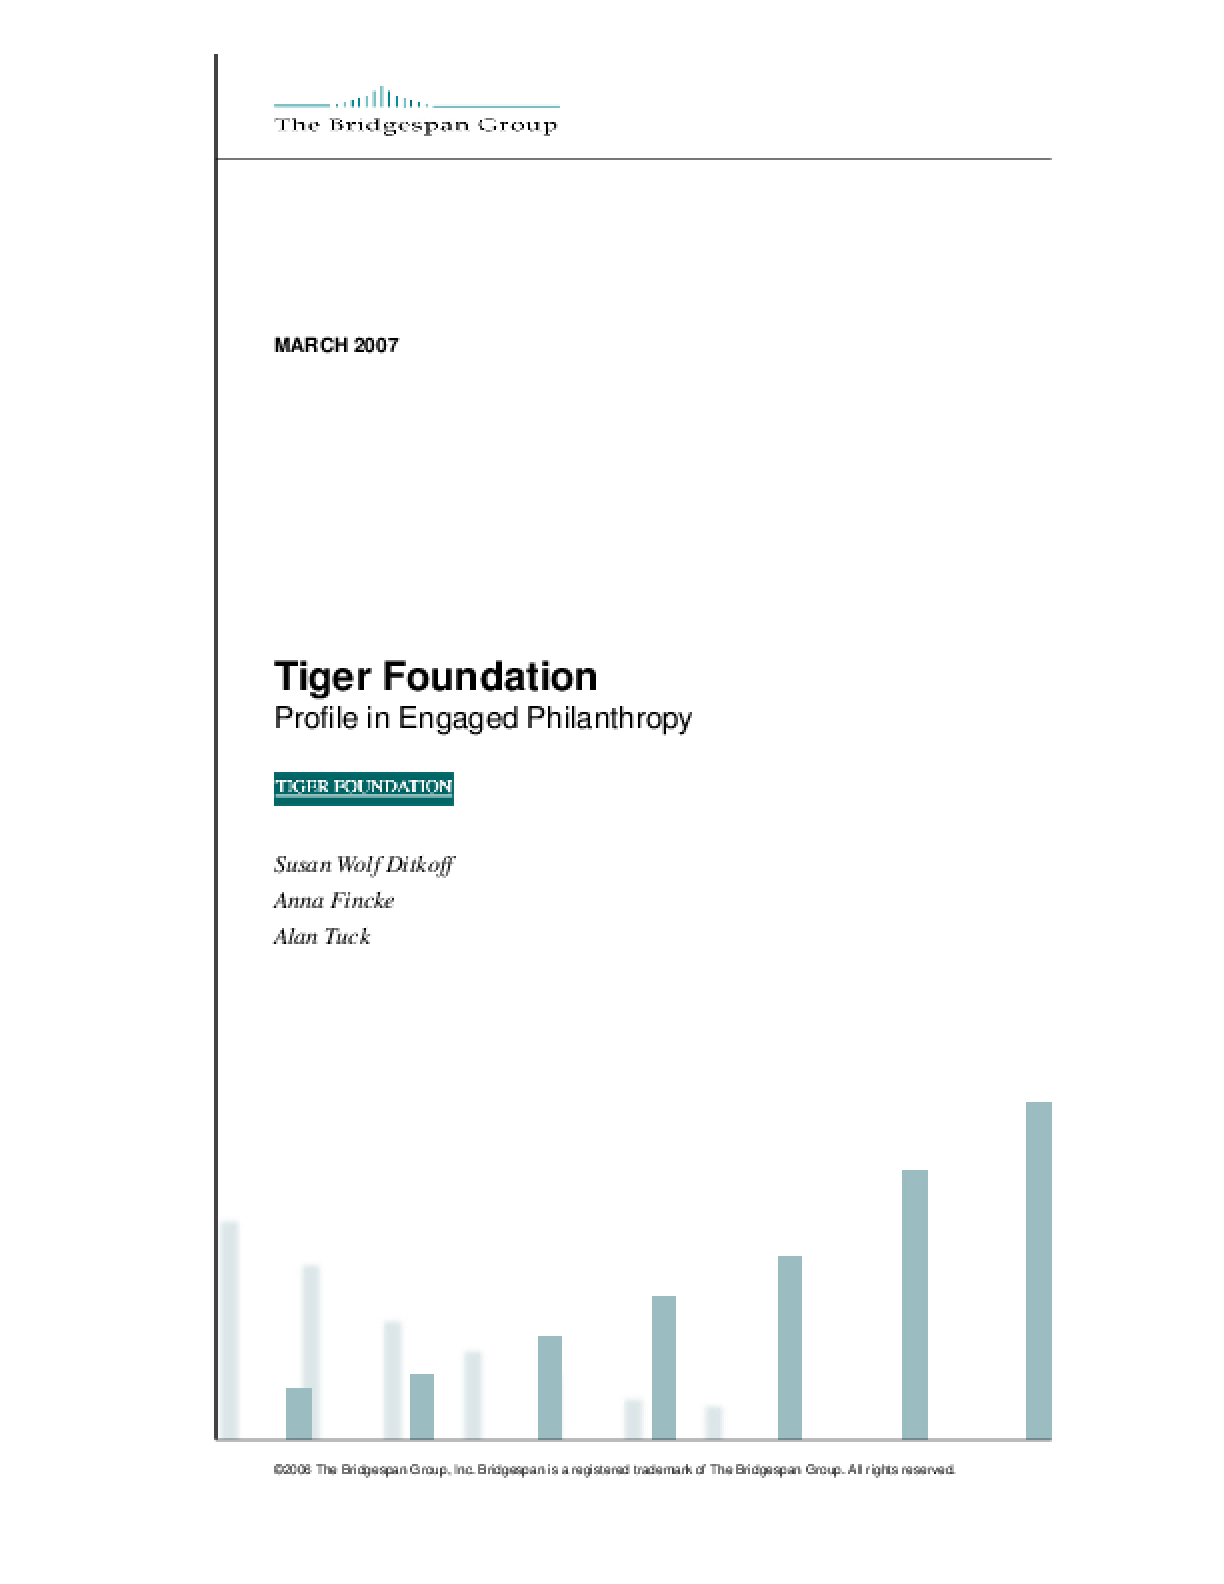 The Tiger Foundation: A Profile in Engaged Philanthropy